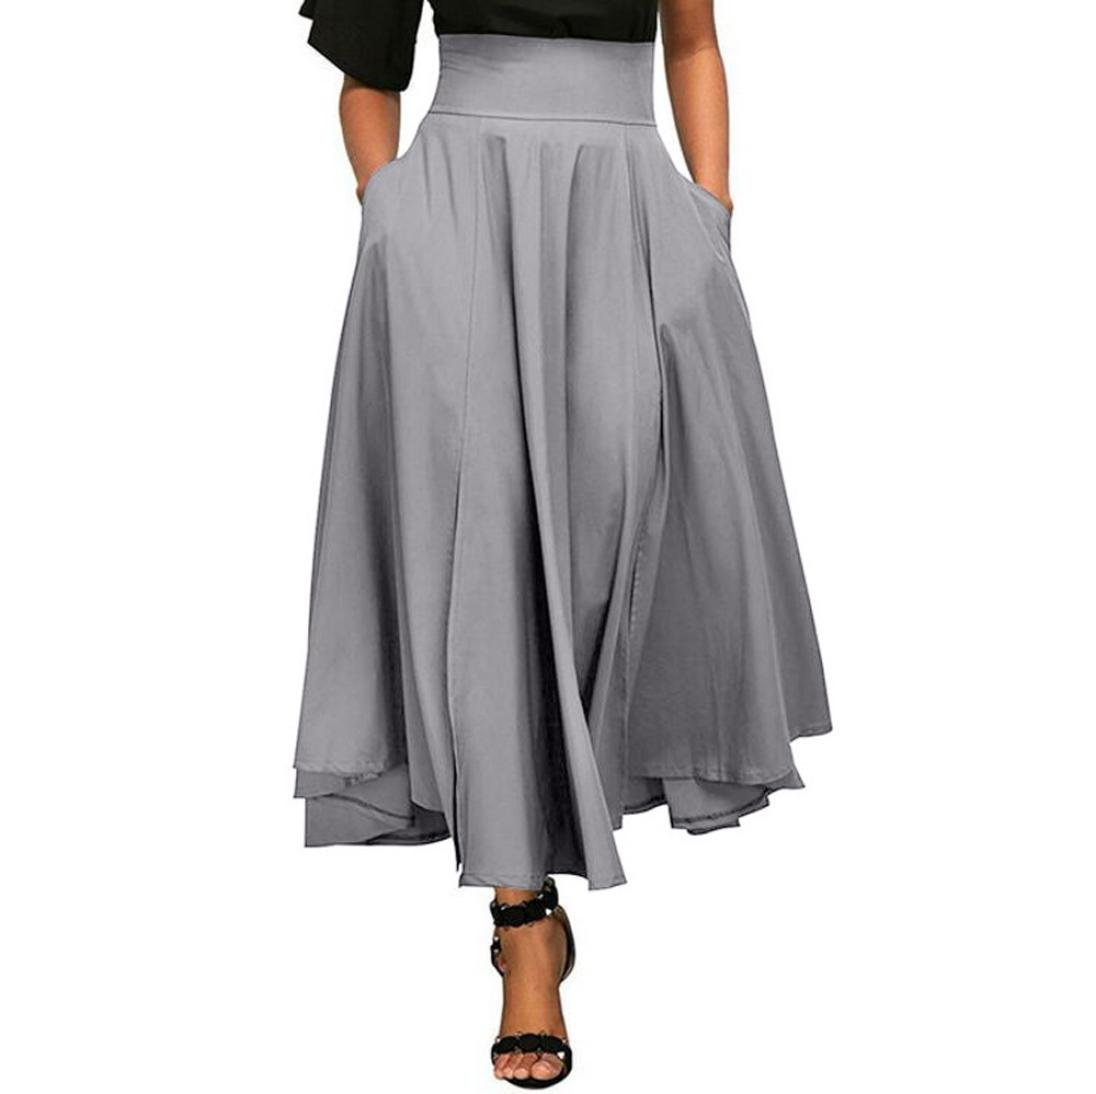 Women High Waist A-Line Front Slit Pleated Belted Long Maxi Skirt with Pocket (Gray, XXL)